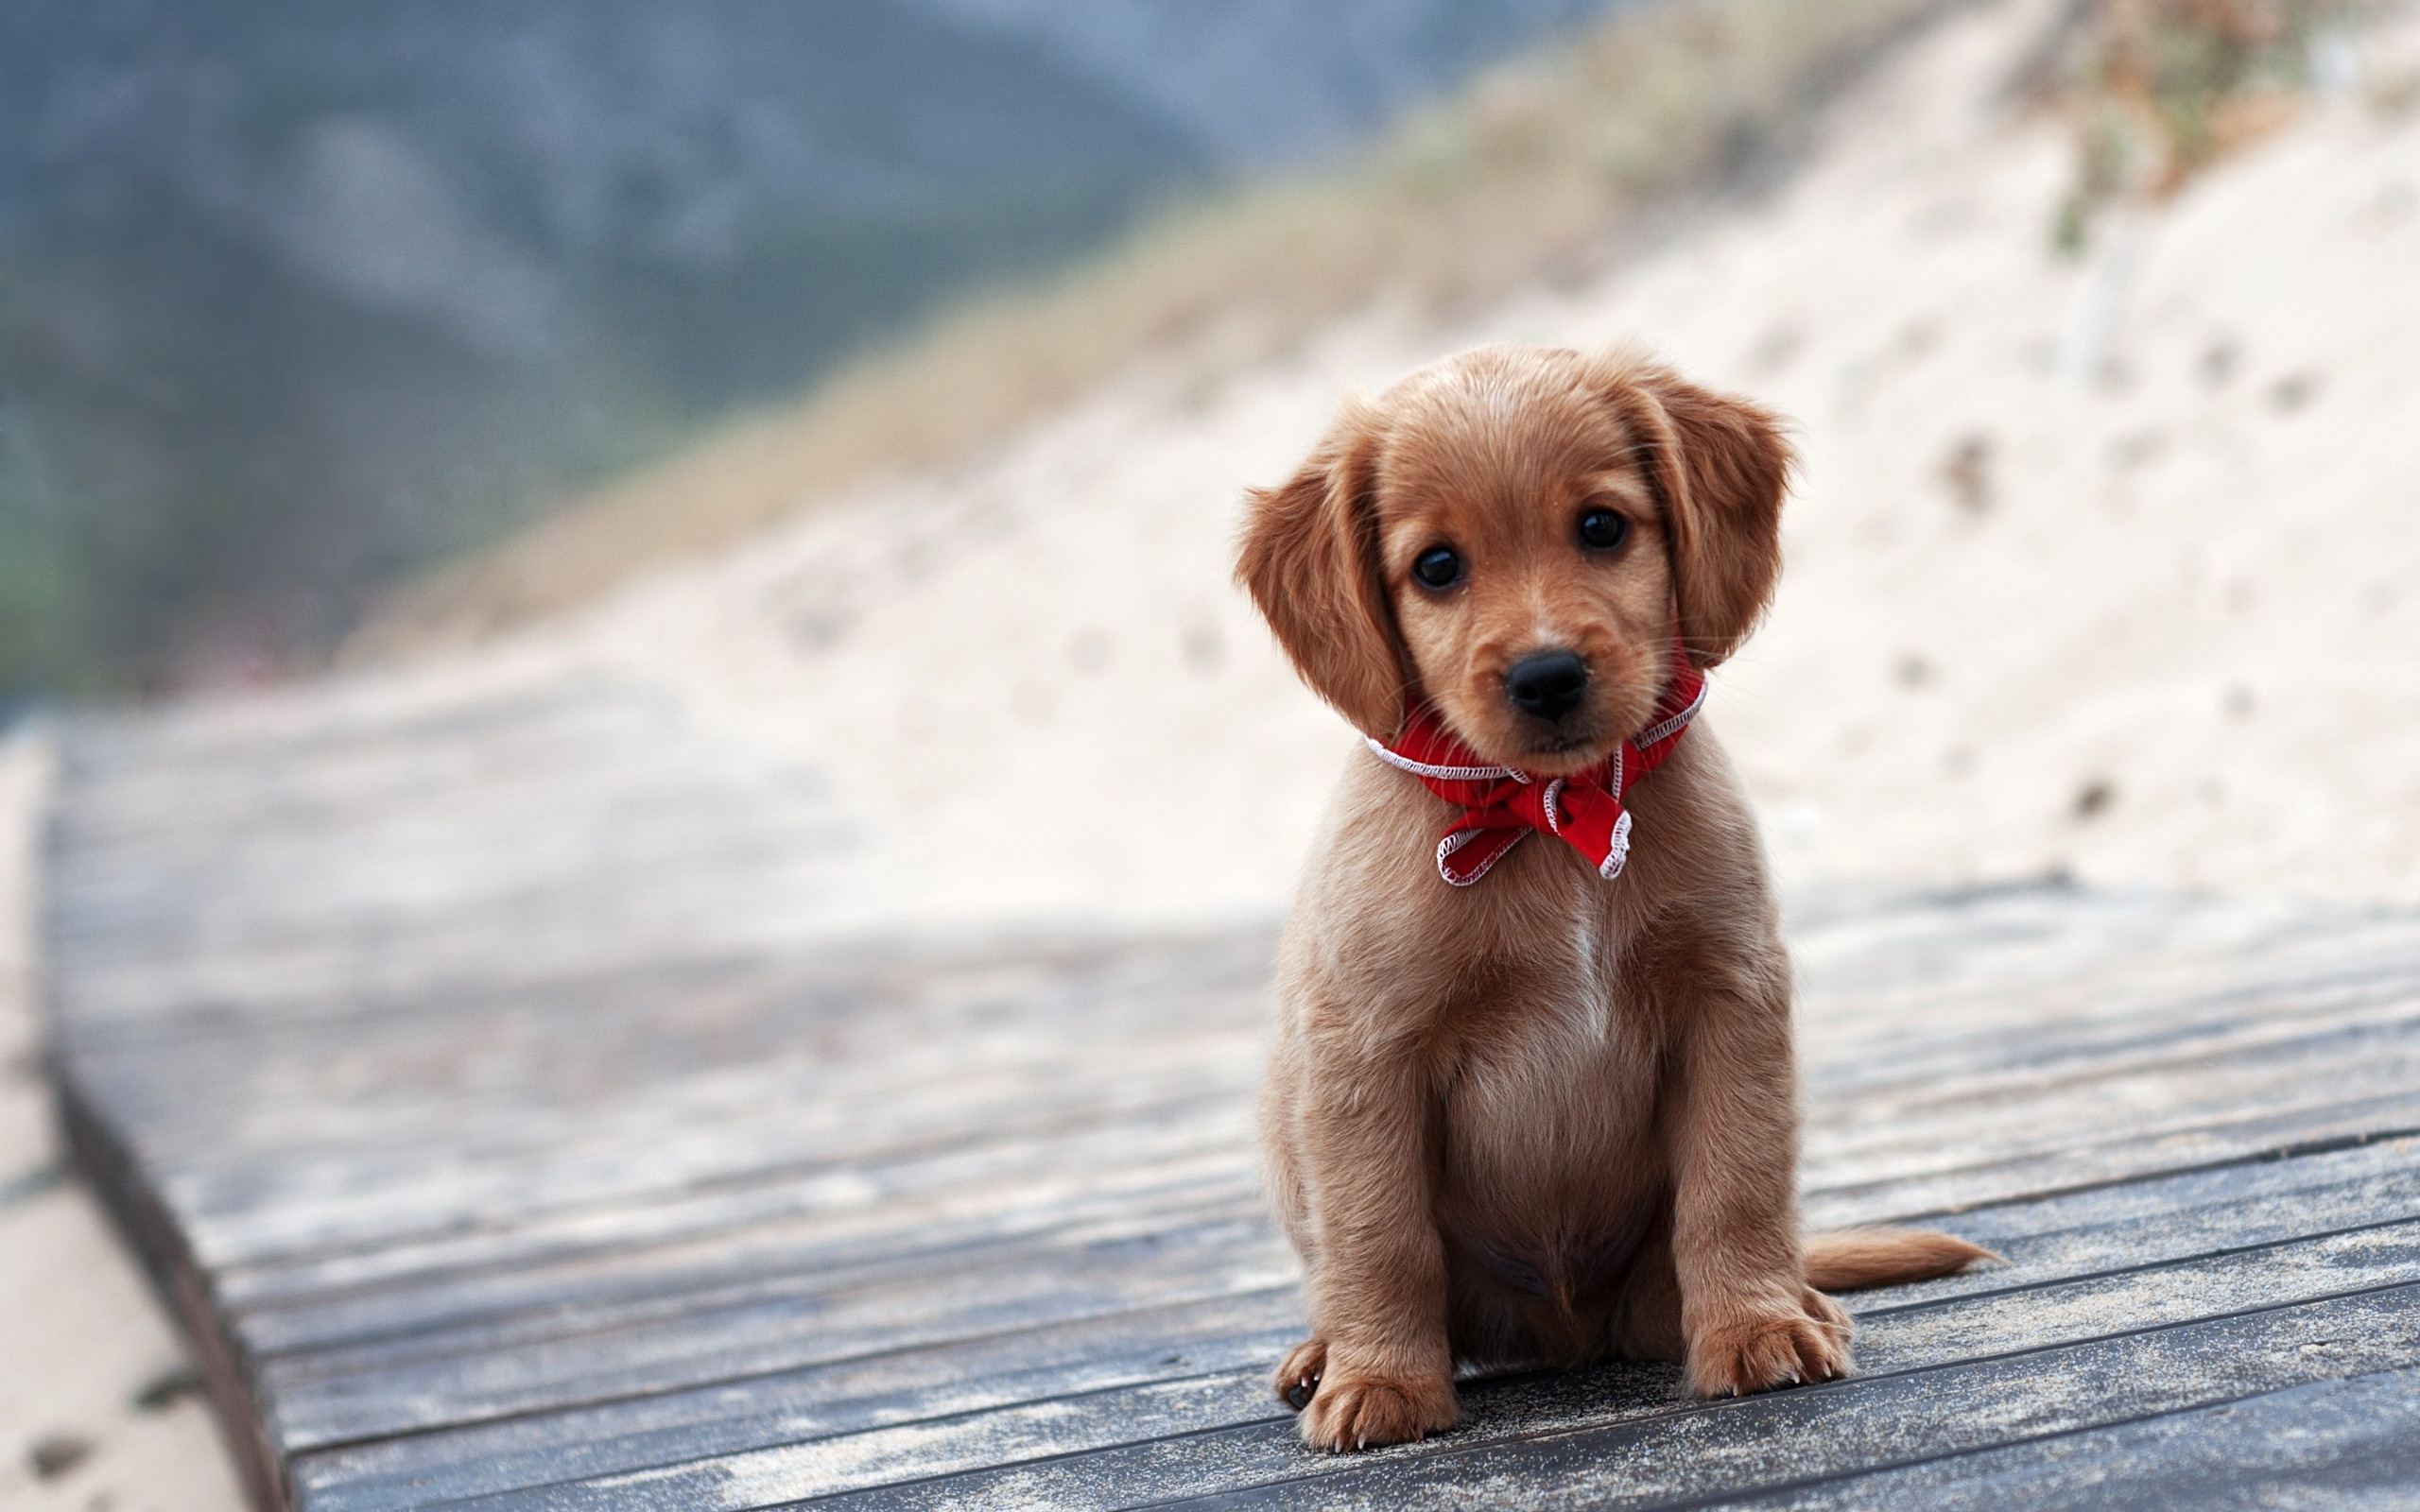 Cute Puppy Dog Sad HD Wallpaper 6537   HD Desktop Wallpapers HD 2560x1600